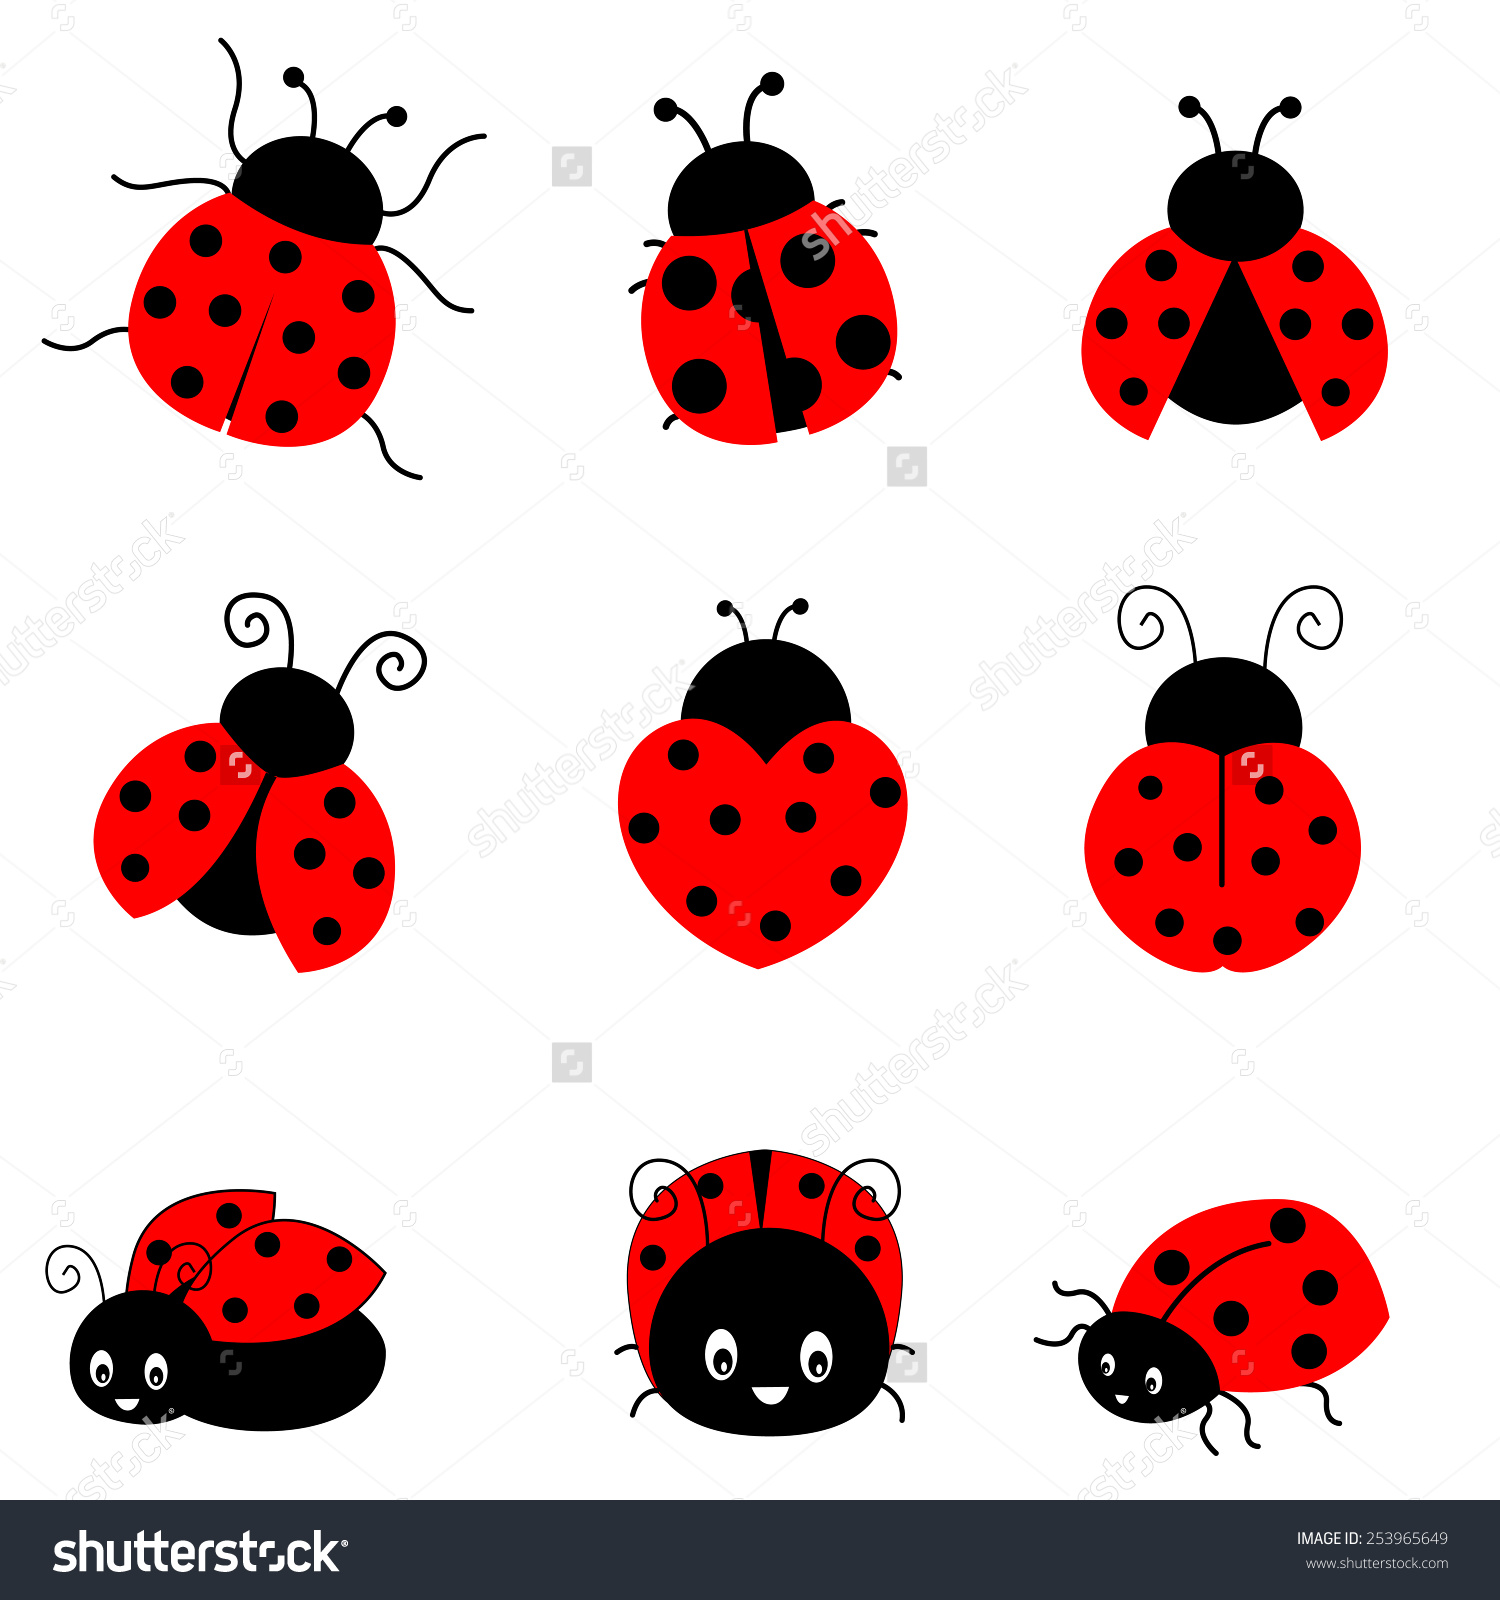 - Cute Ladybug Clipart & Look At Clip Art Images - ClipartLook